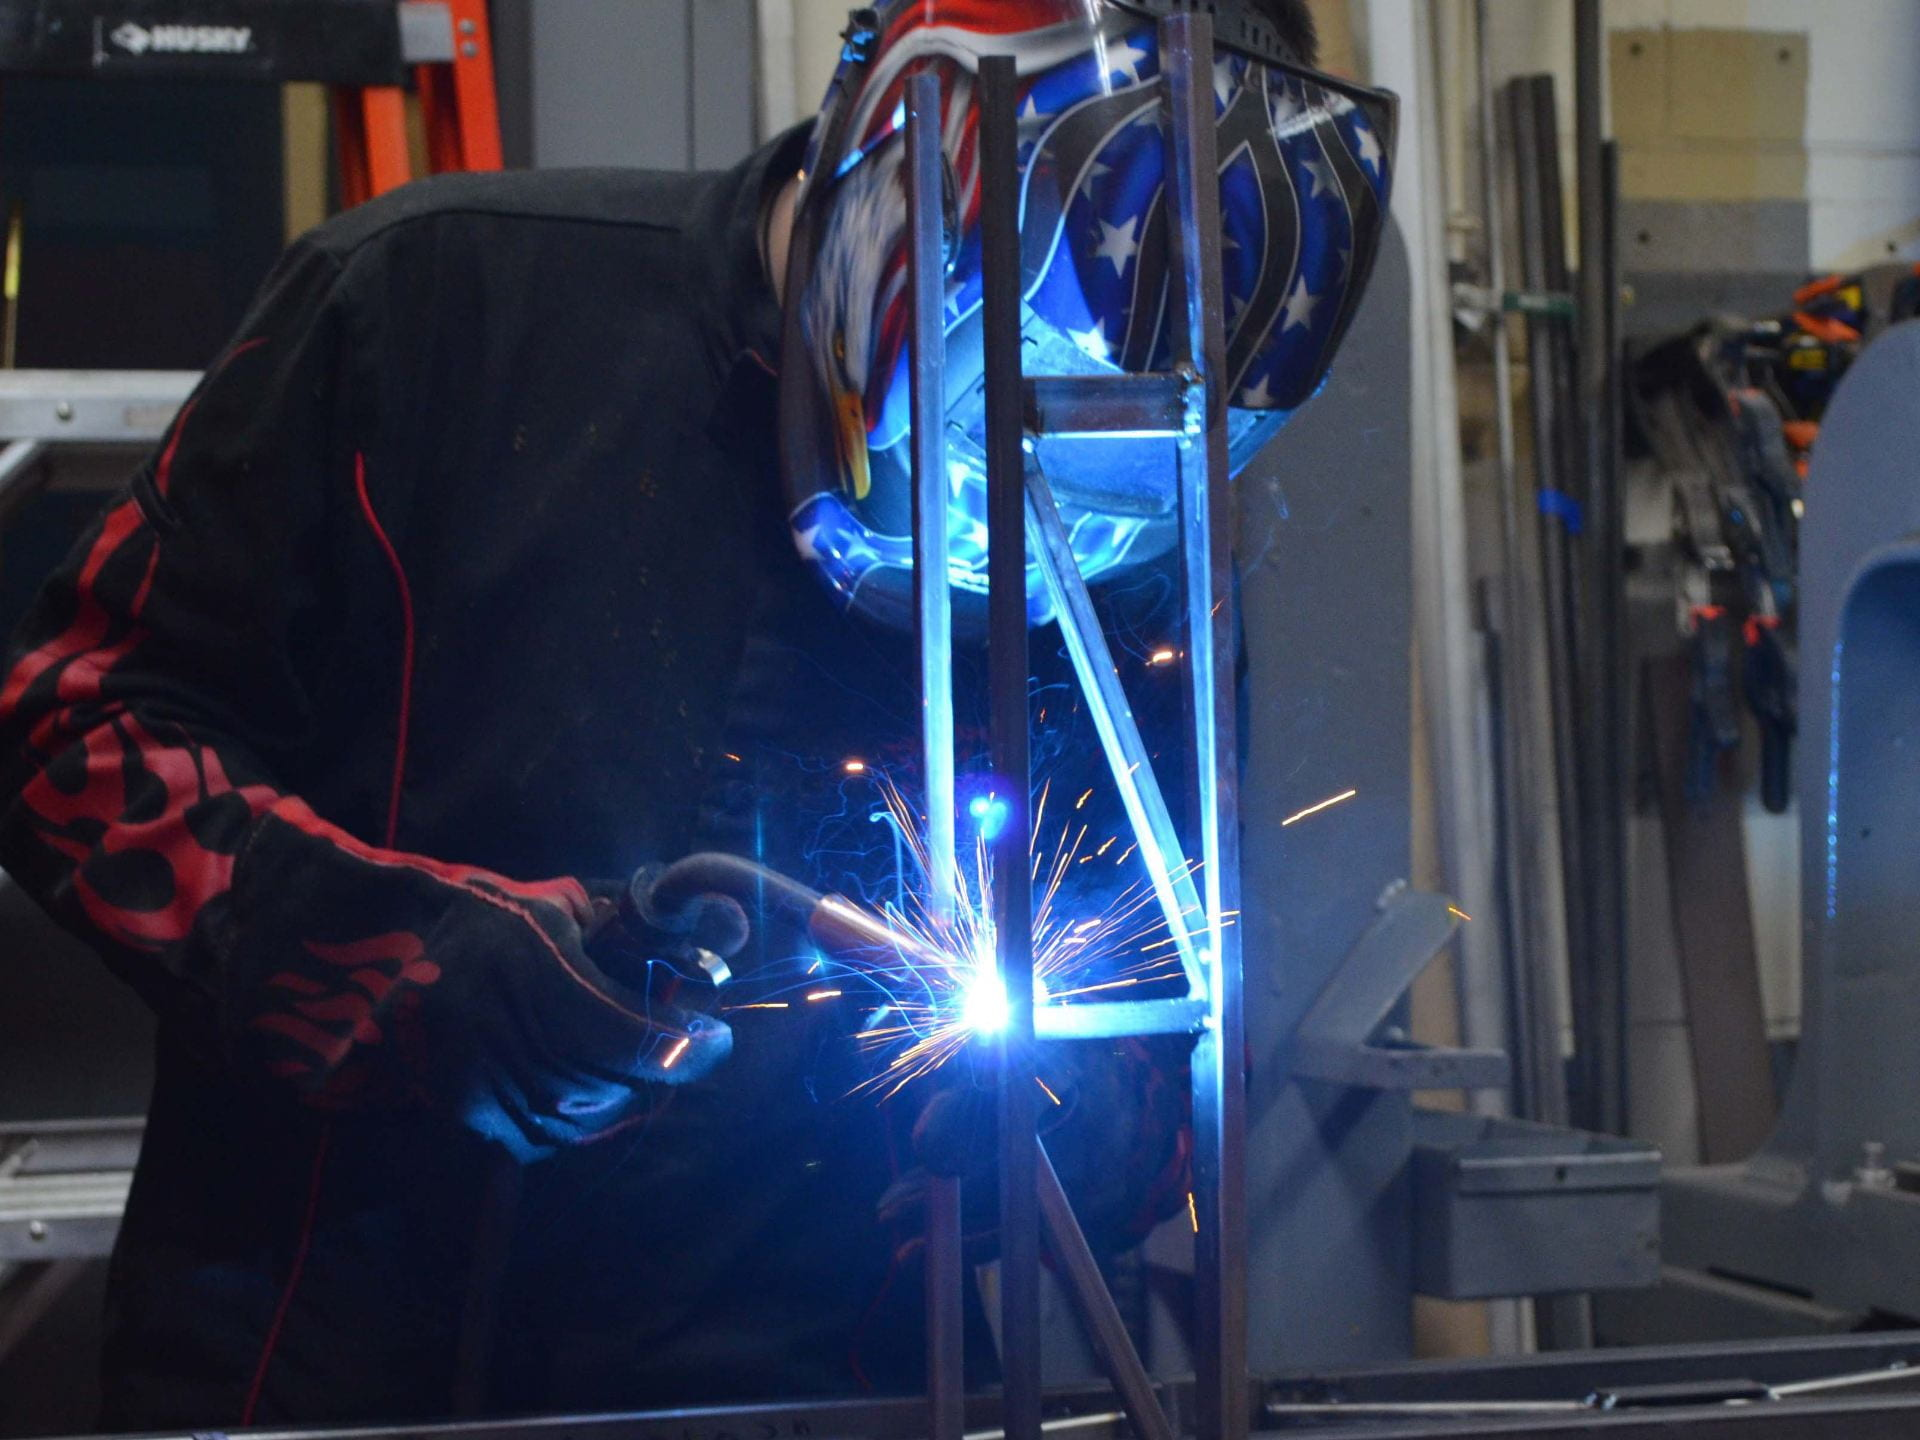 A photograph of a student welding